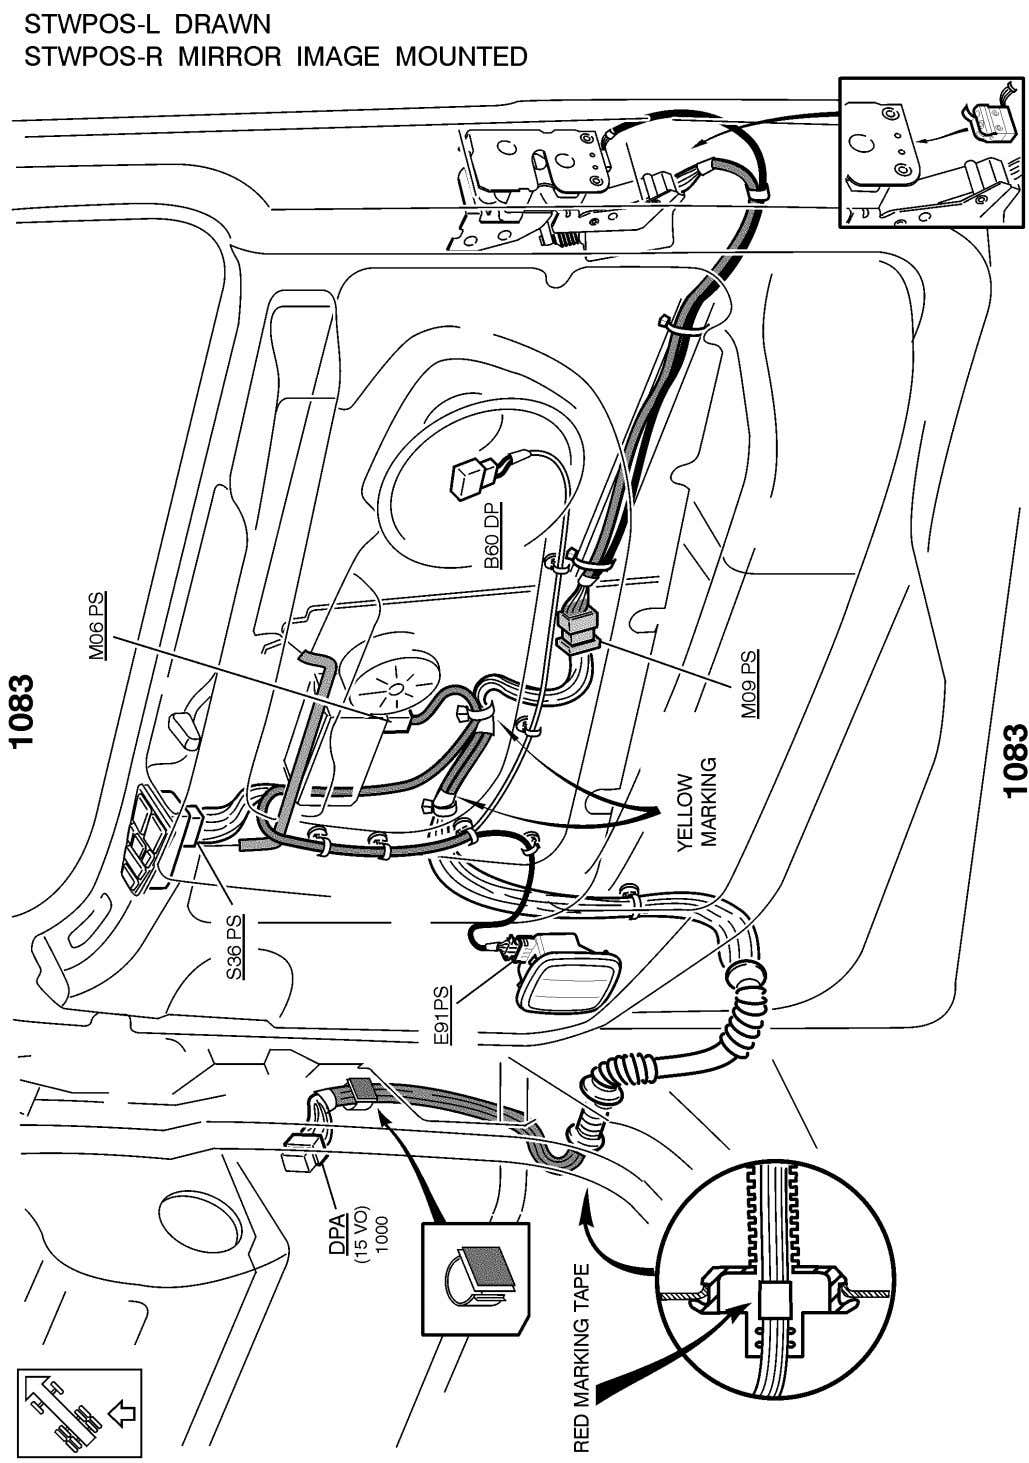 T3021655 Page 184 (298) Wiring diagram